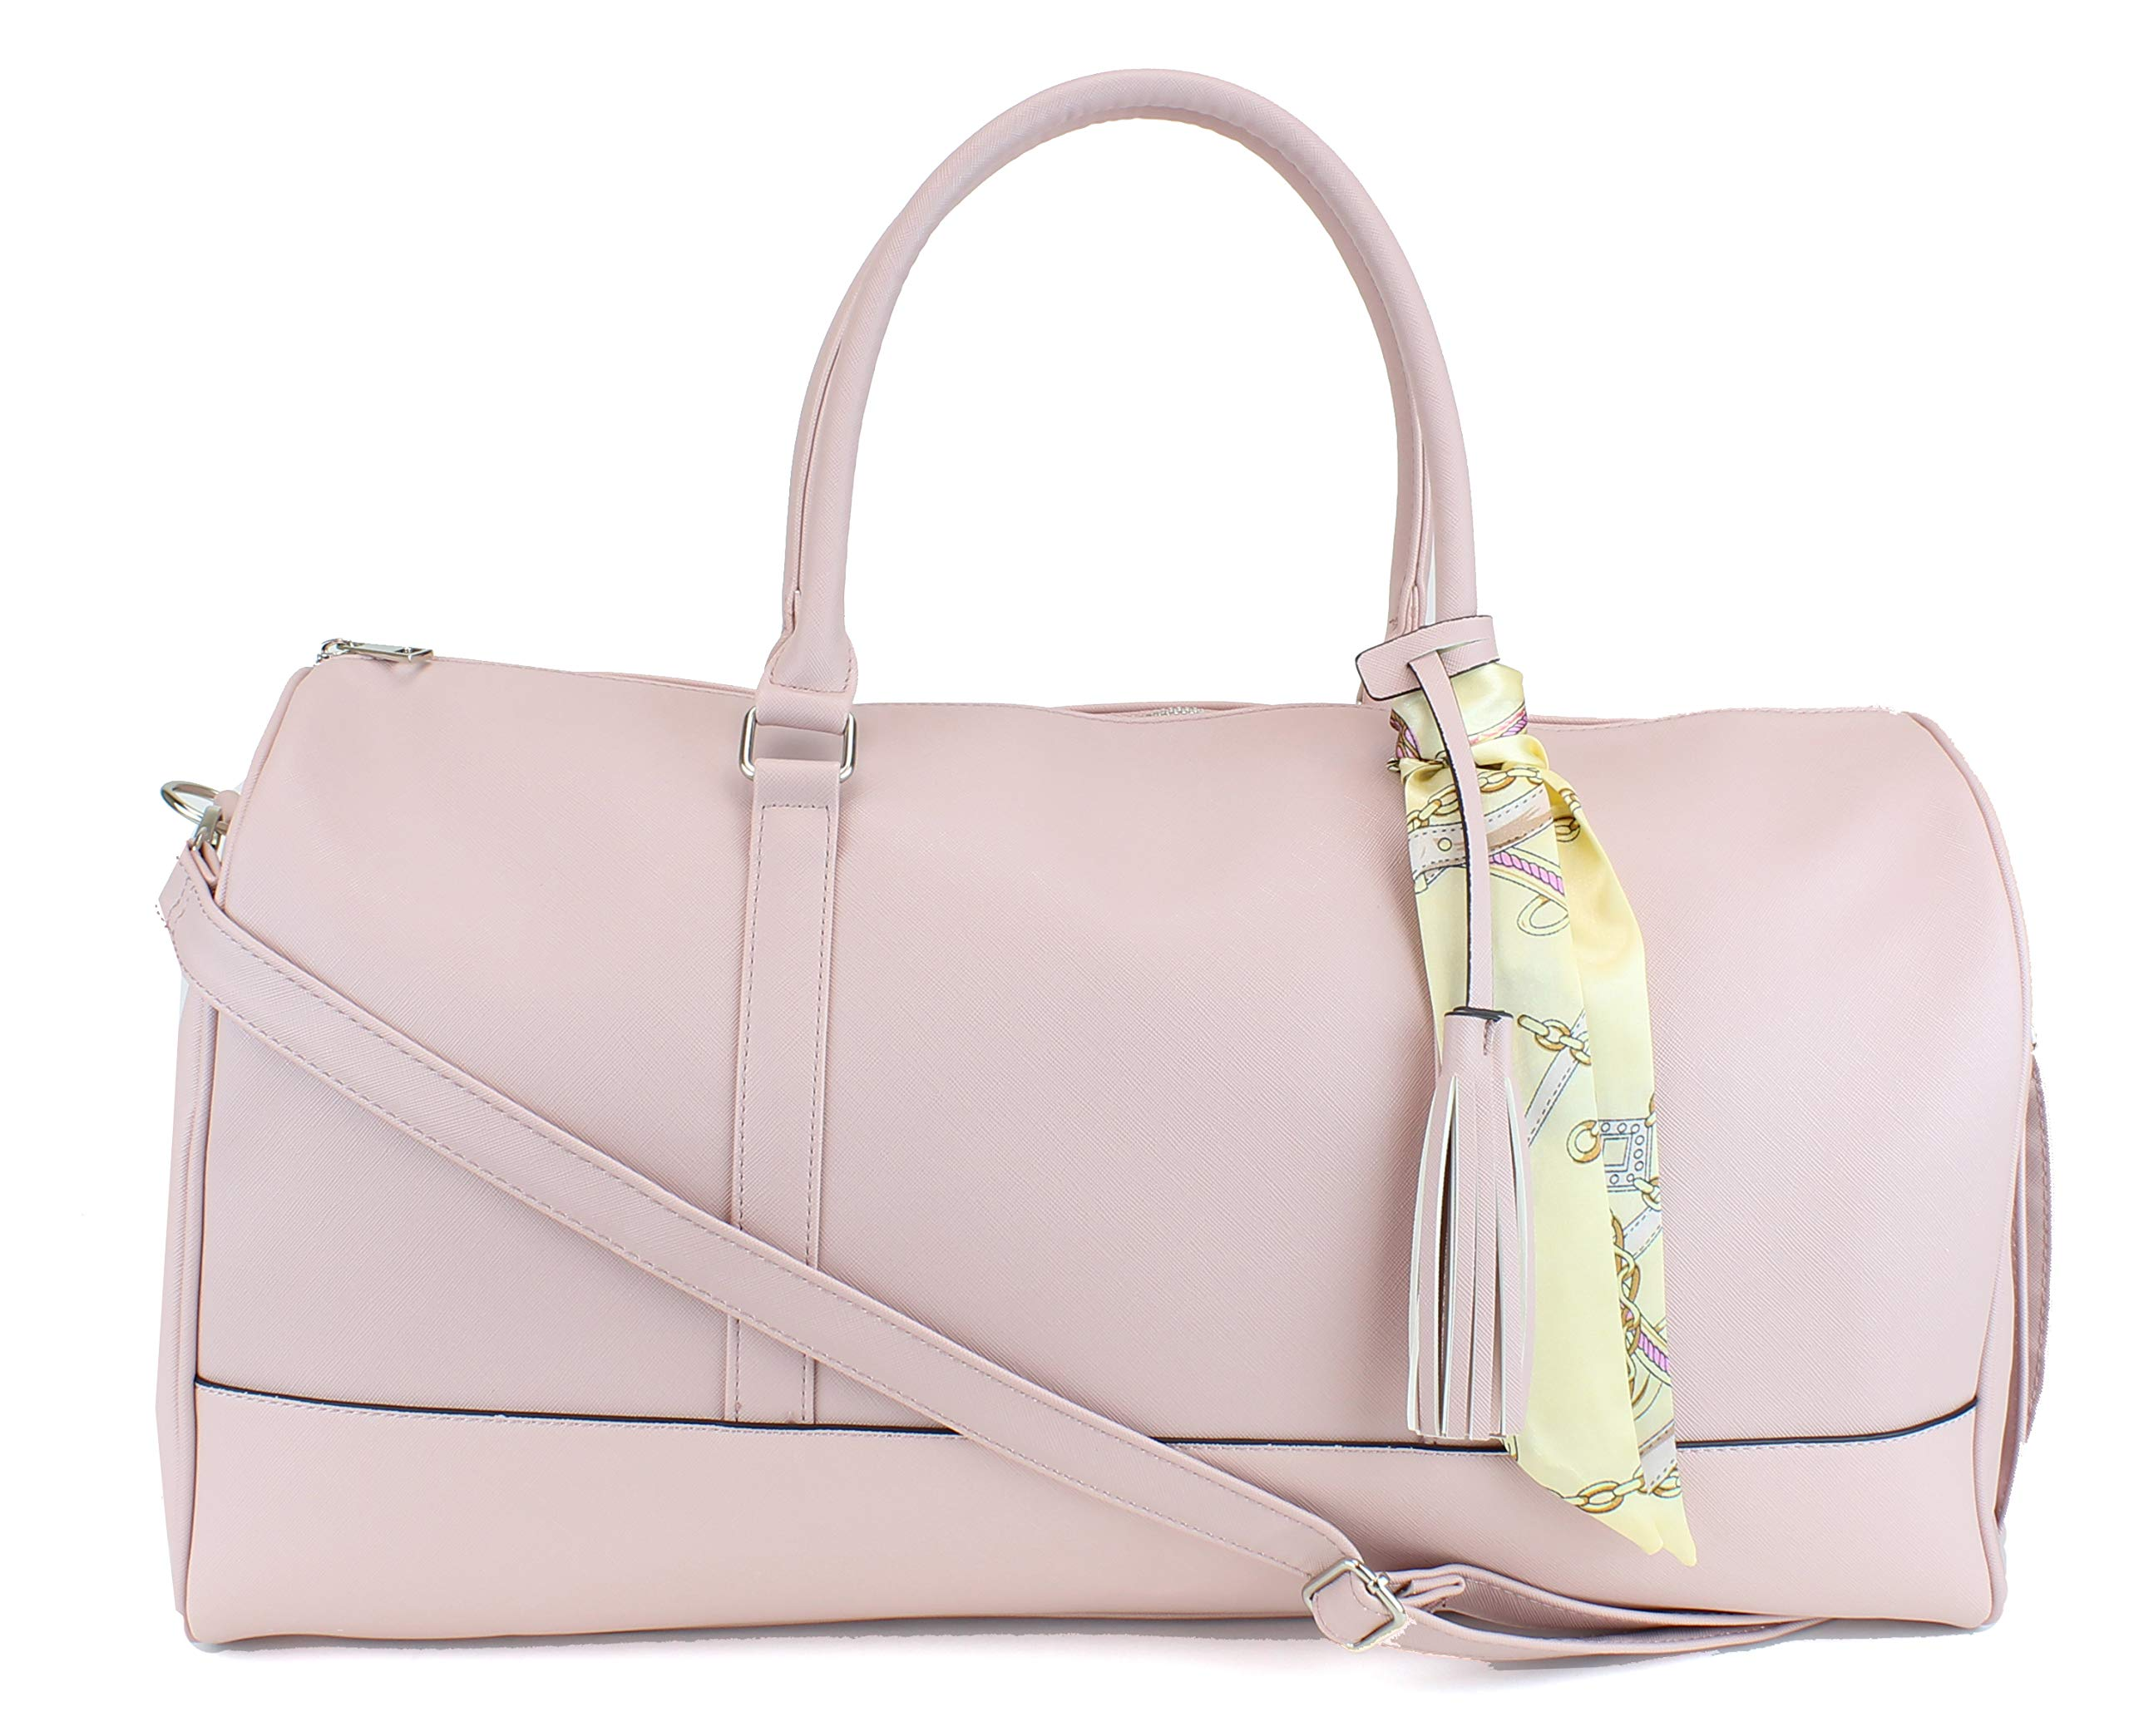 """Women's Large PU Leather Weekender Duffel Bag with Satin Interior - Big 22"""" Carry-On Size - Pink"""